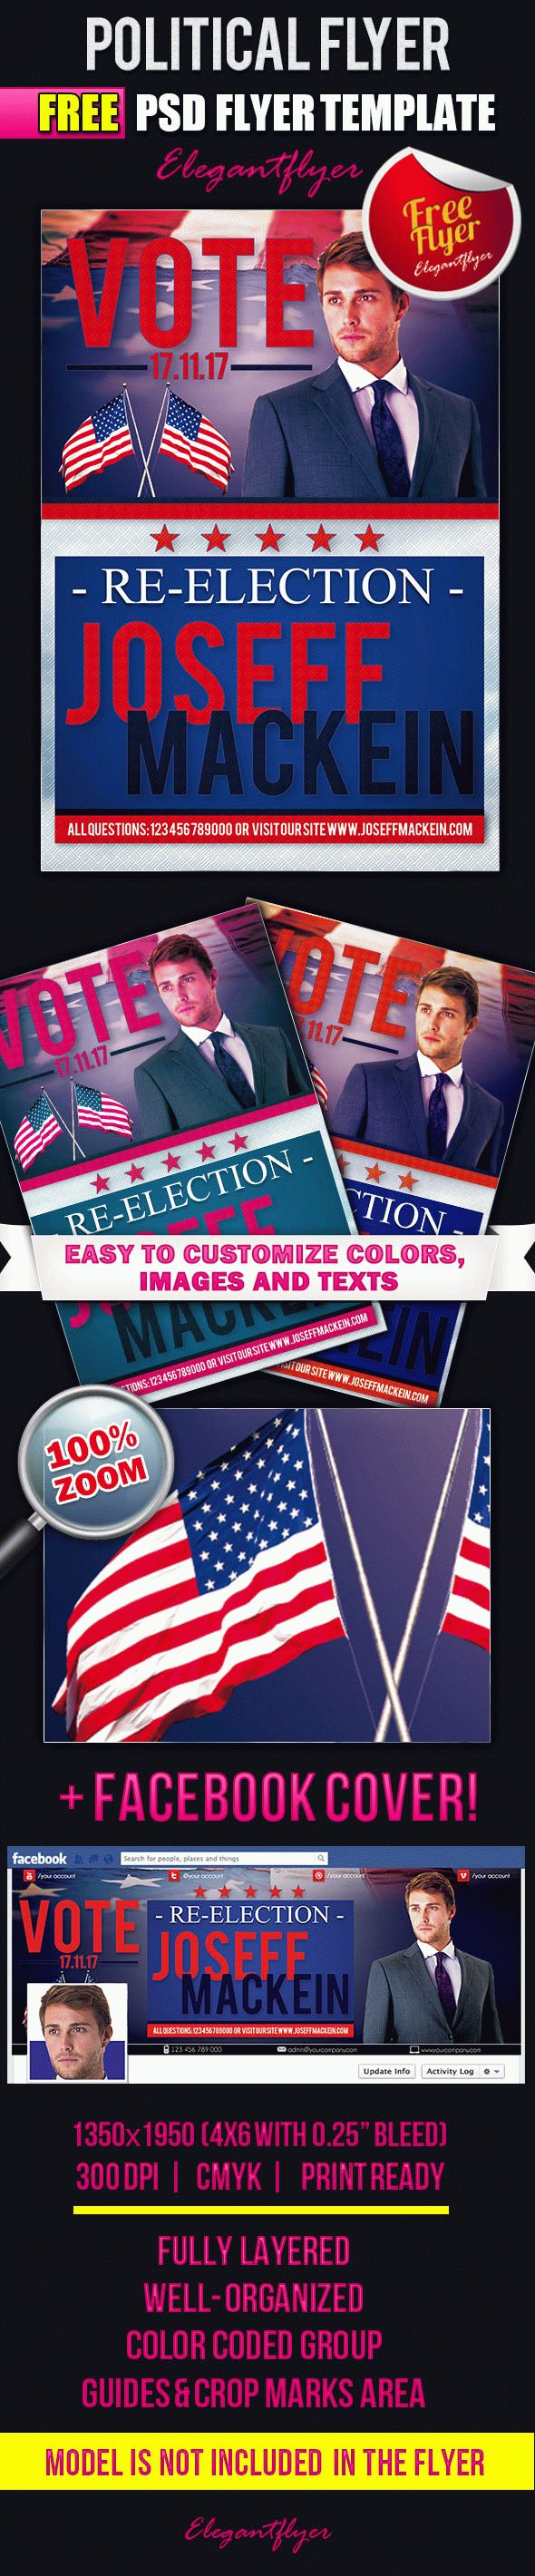 political flyer psd template facebook cover by elegantflyer political flyer psd template facebook cover